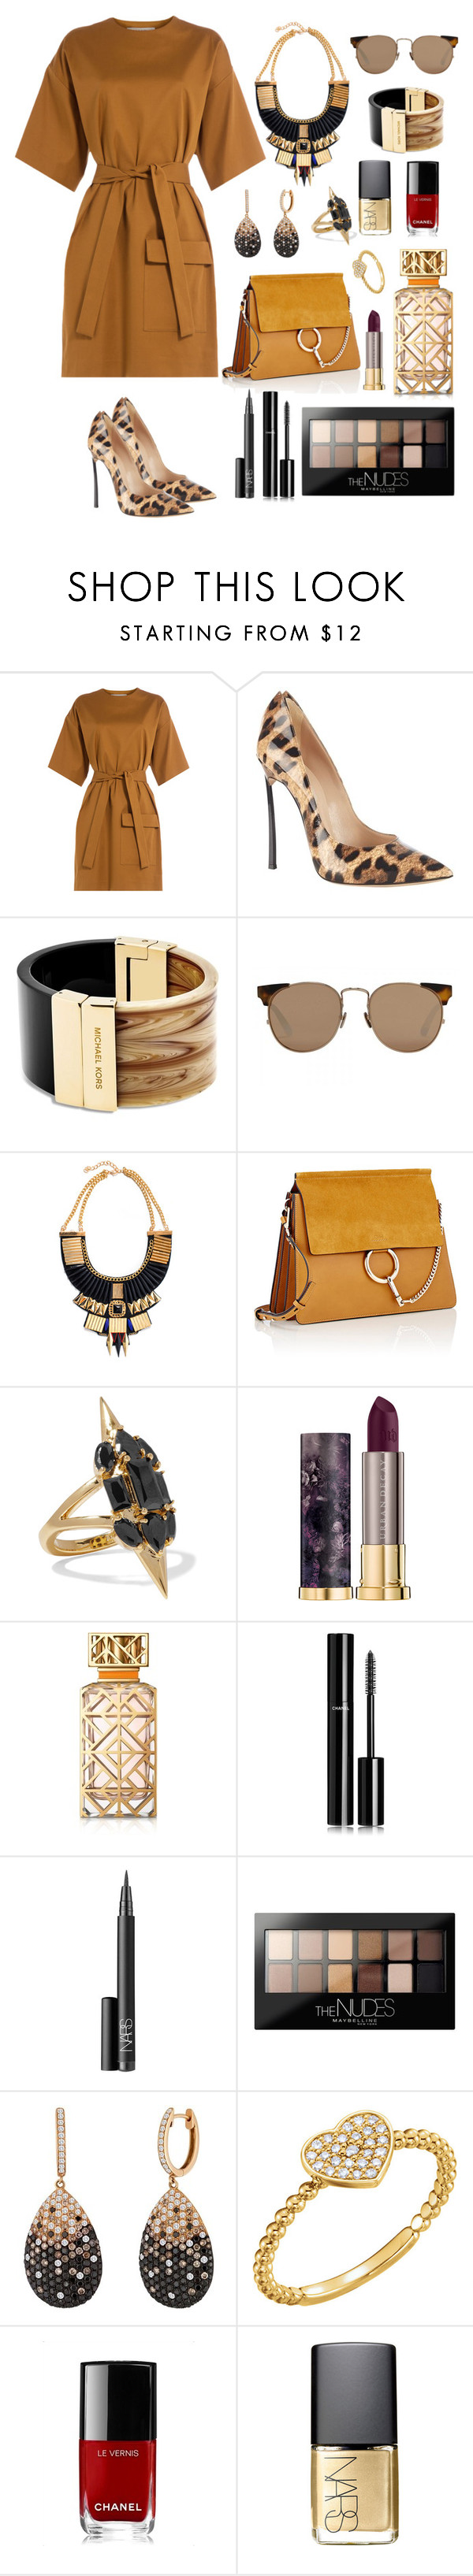 """Mustard"" by shanelderouge ❤ liked on Polyvore featuring MSGM, Casadei, Michael Kors, Linda Farrow, Collections by Hayley, Chloé, Noir Jewelry, Urban Decay, Tory Burch and Chanel"